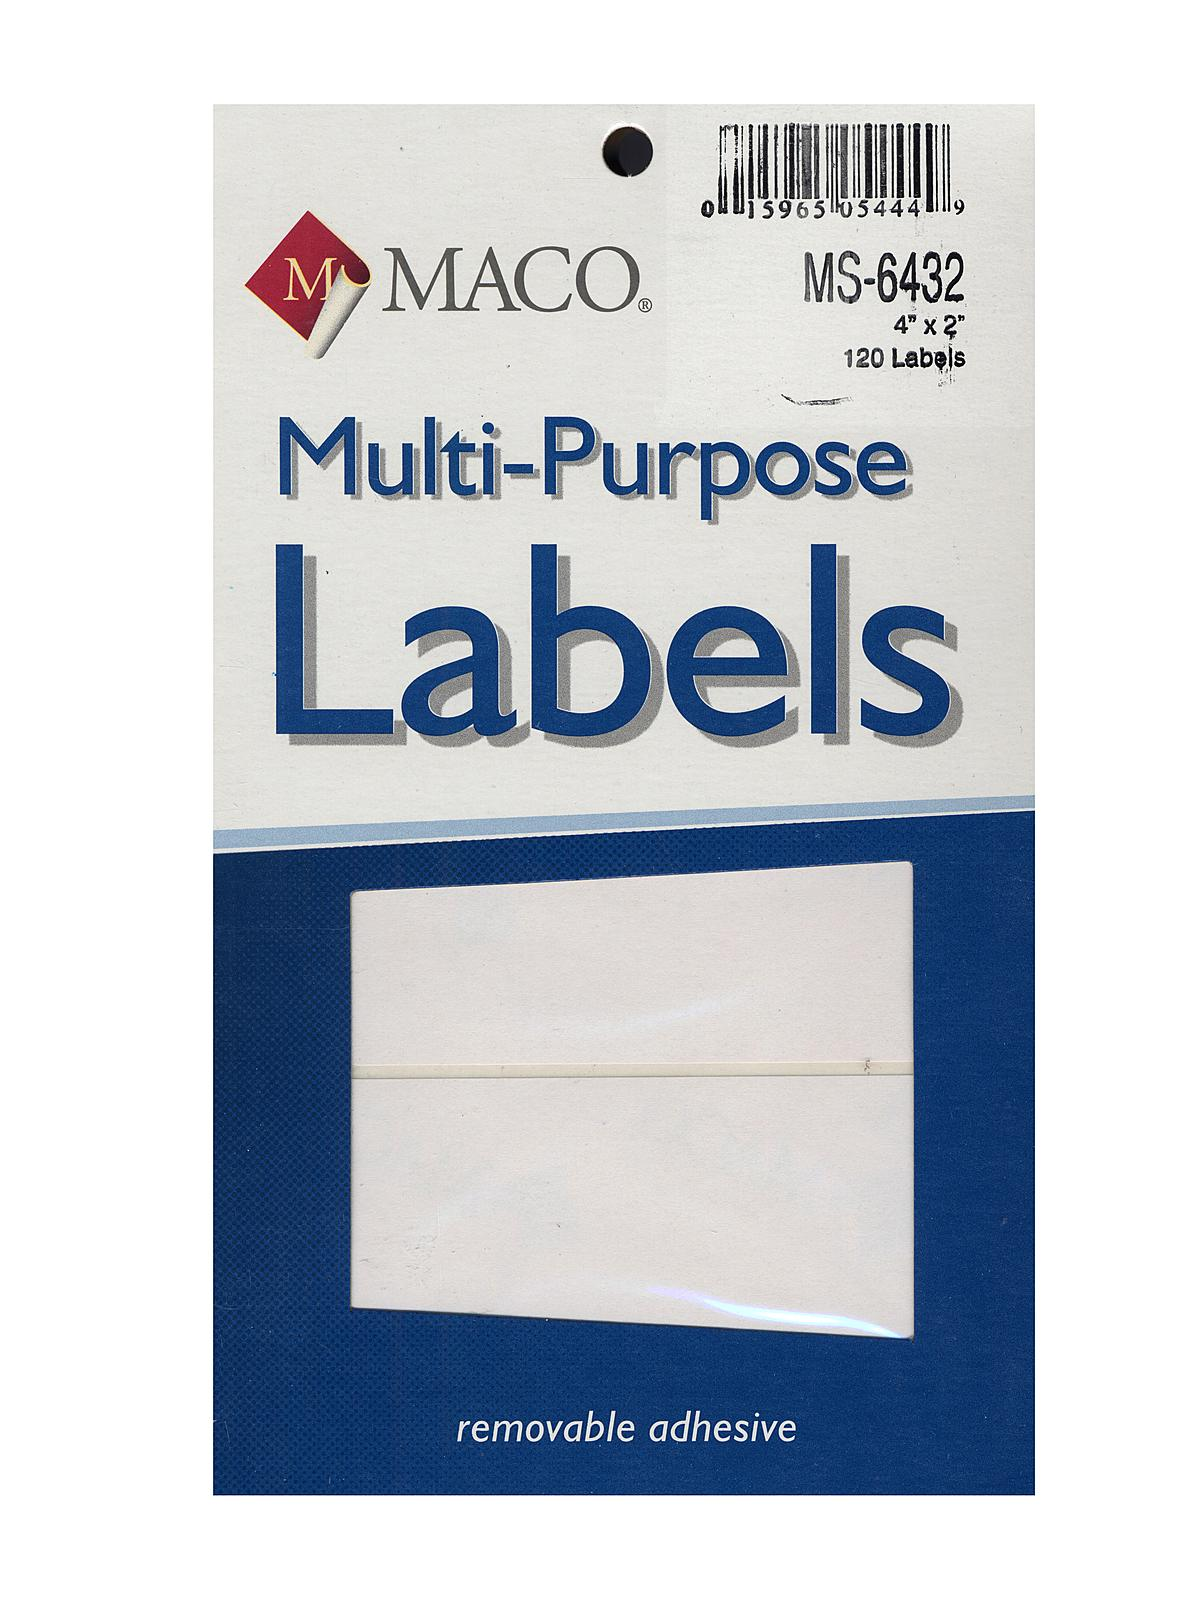 Maco multi purpose handwrite labels misterart multi purpose handwrite labels rectangular 4 in x 2 in pack of 120 pronofoot35fo Choice Image